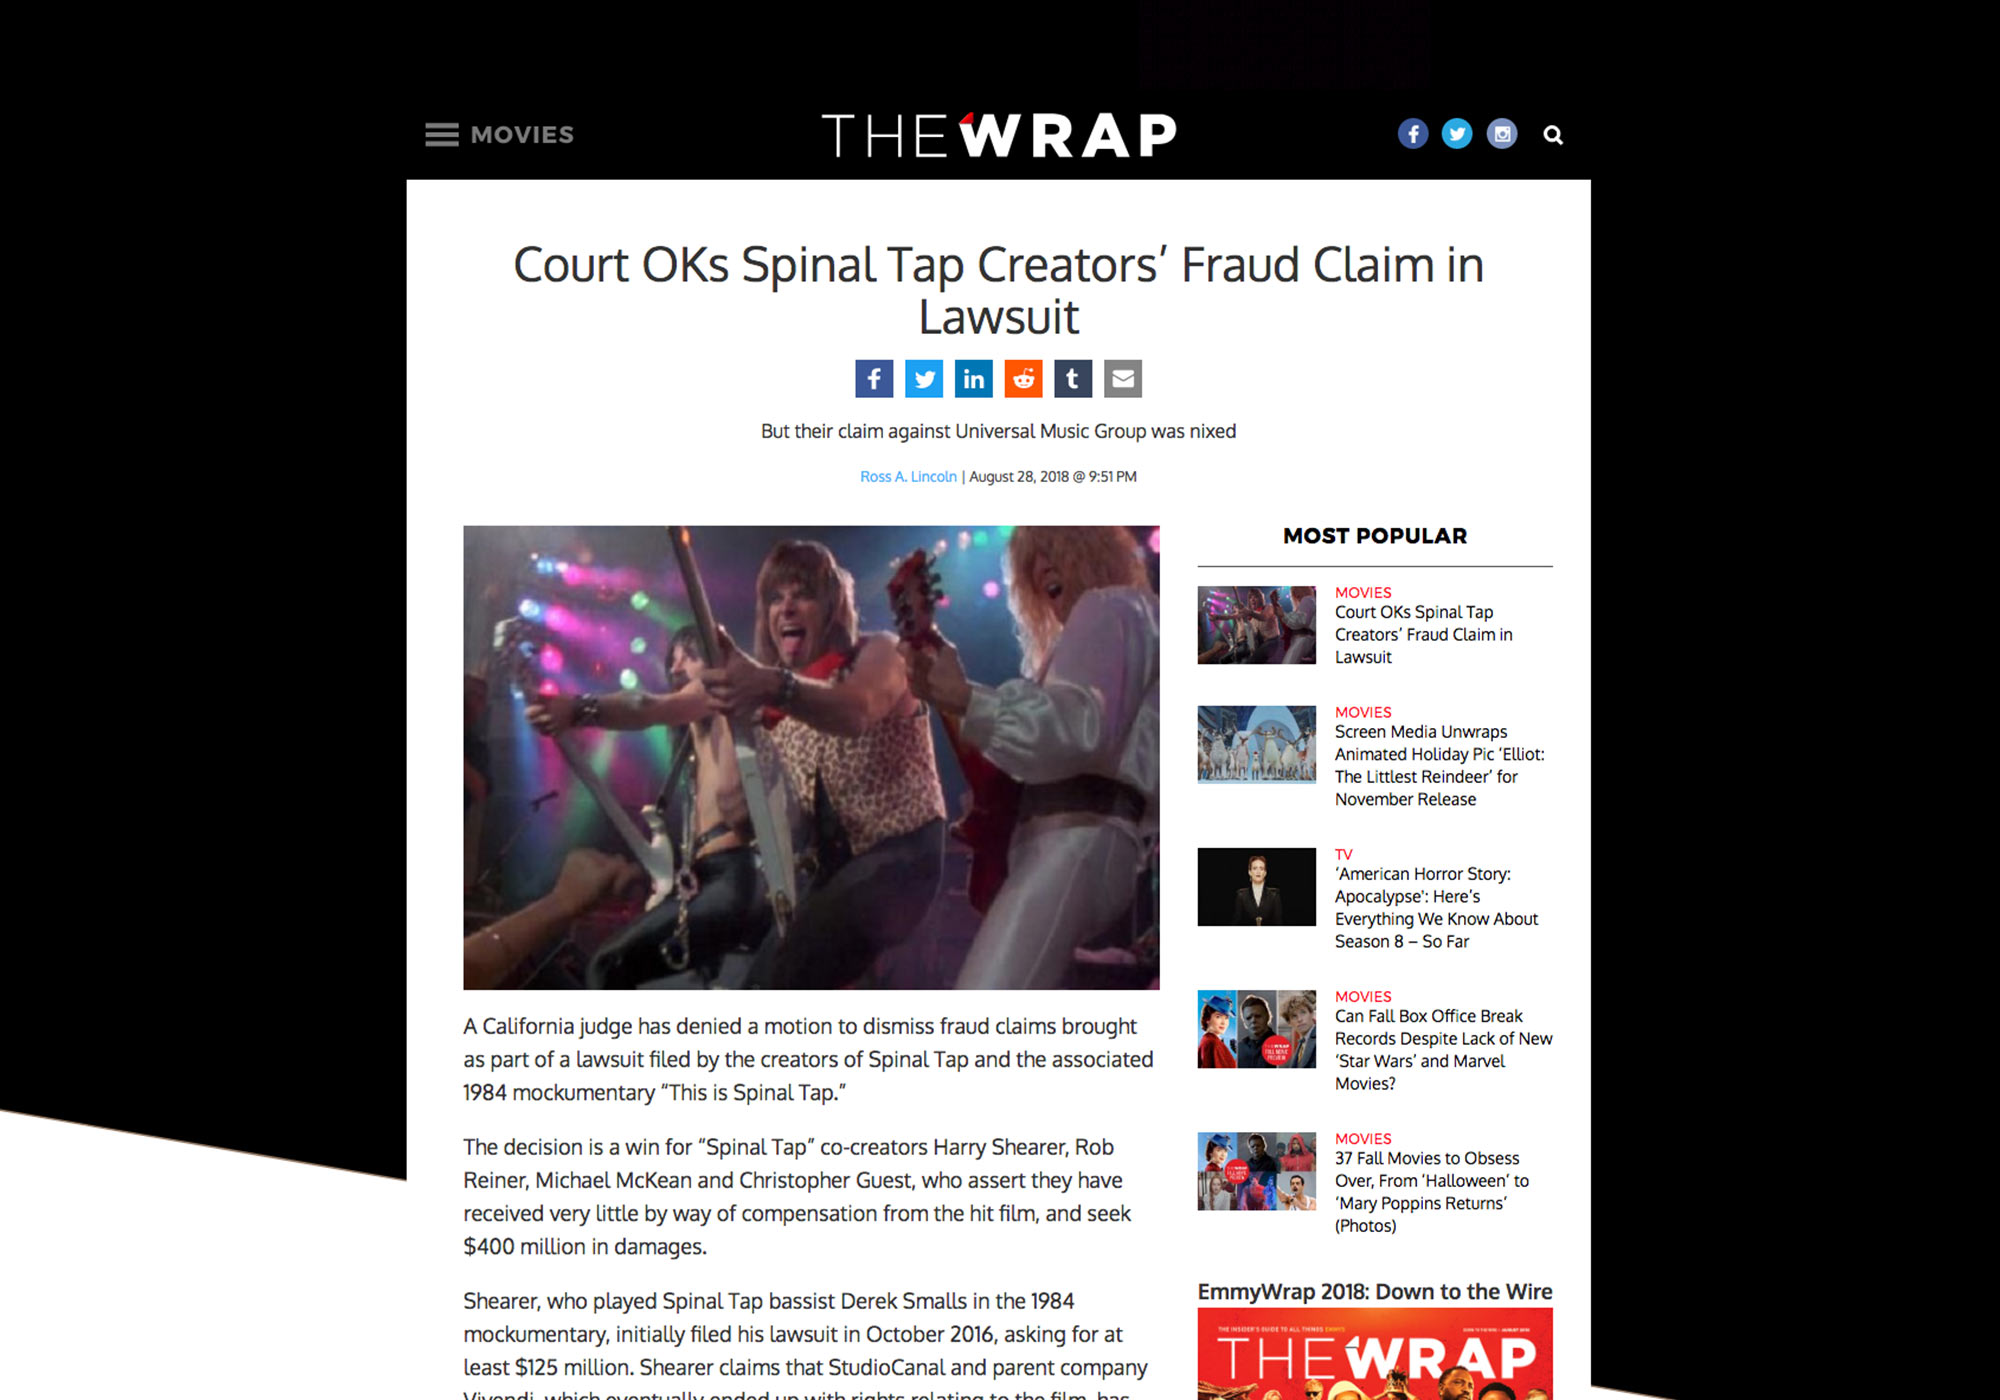 Fairness Rocks News Court OKs Spinal Tap Creators' Fraud Claim in Lawsuit